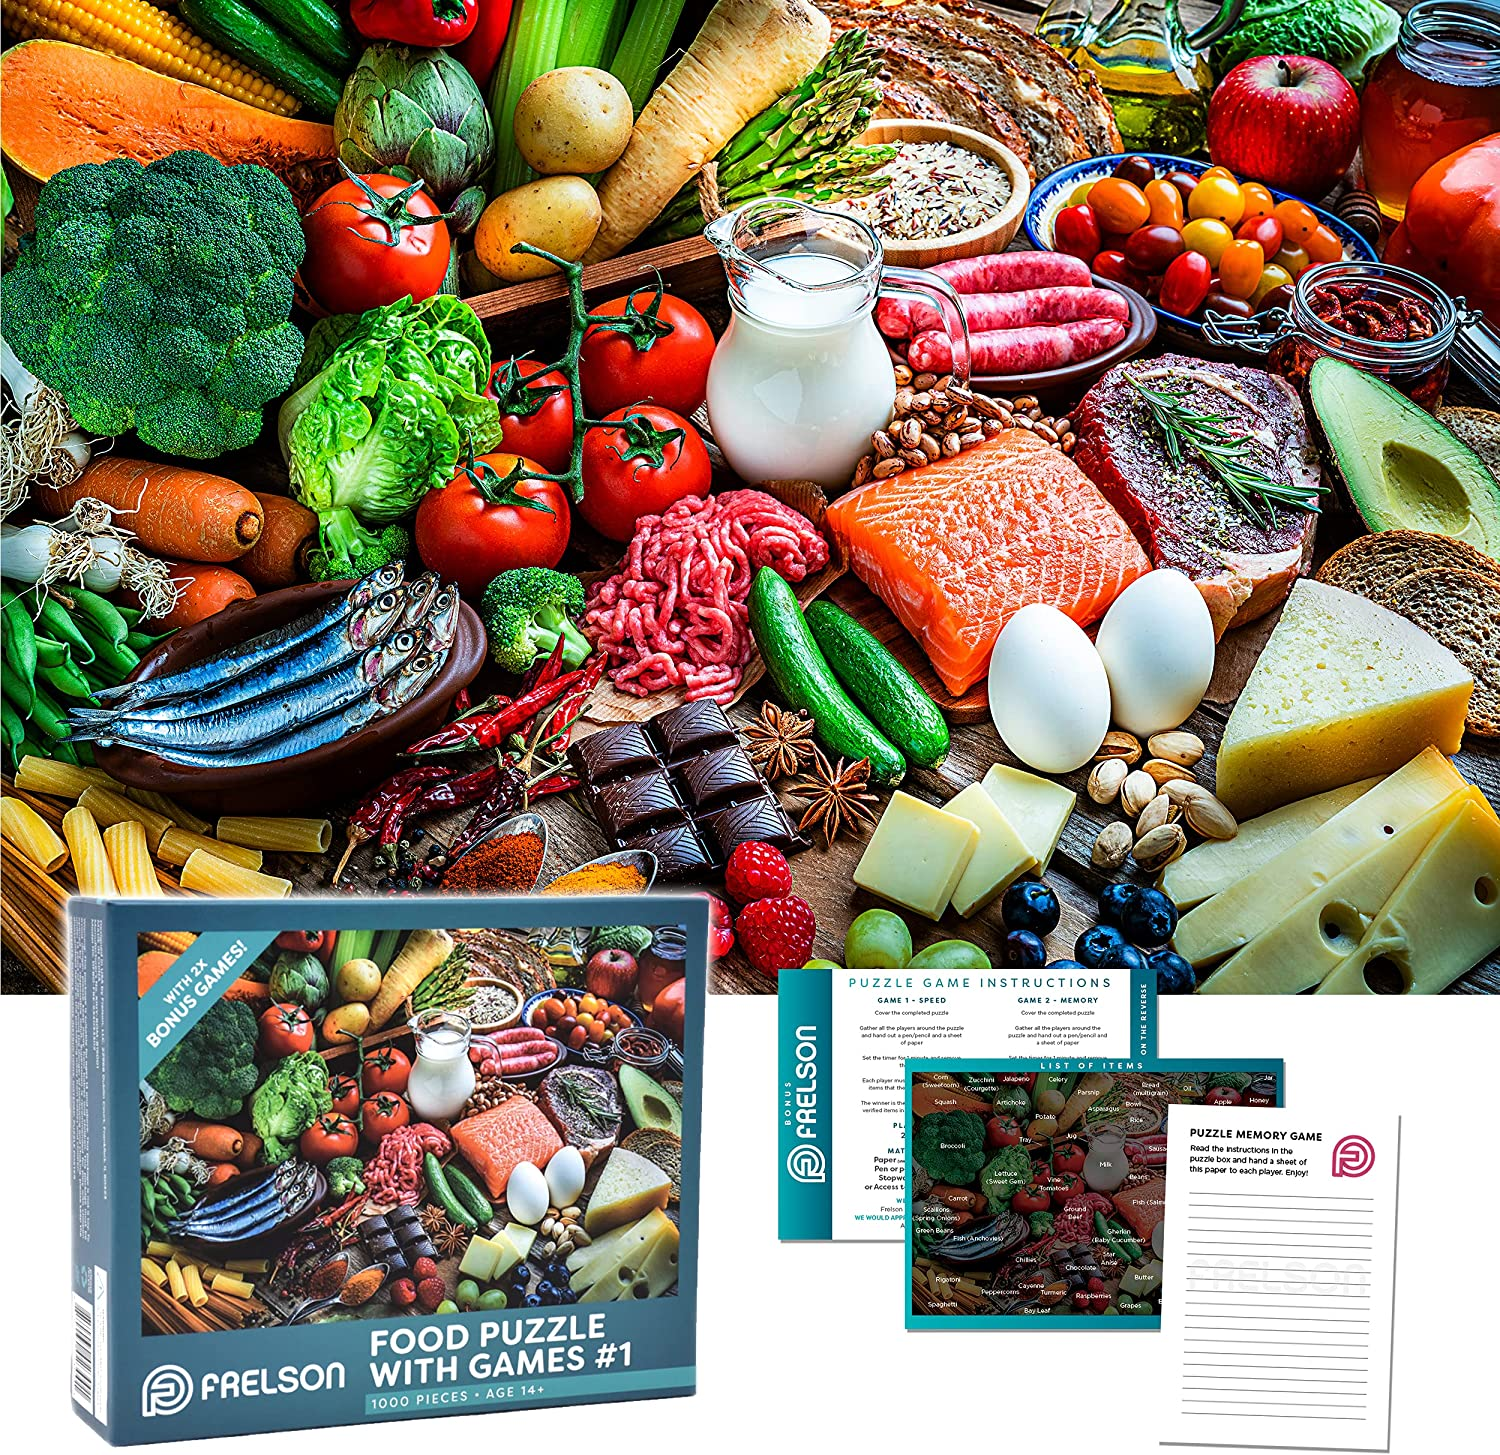 1000 Piece Jigsaw Puzzles for Adults with 2X Bonus Games, Food Puzzle #1-1000 Piece Puzzles for Adults Includes Large Puzzle Poster, Puzzle Game Instructions and Notepad (27.5